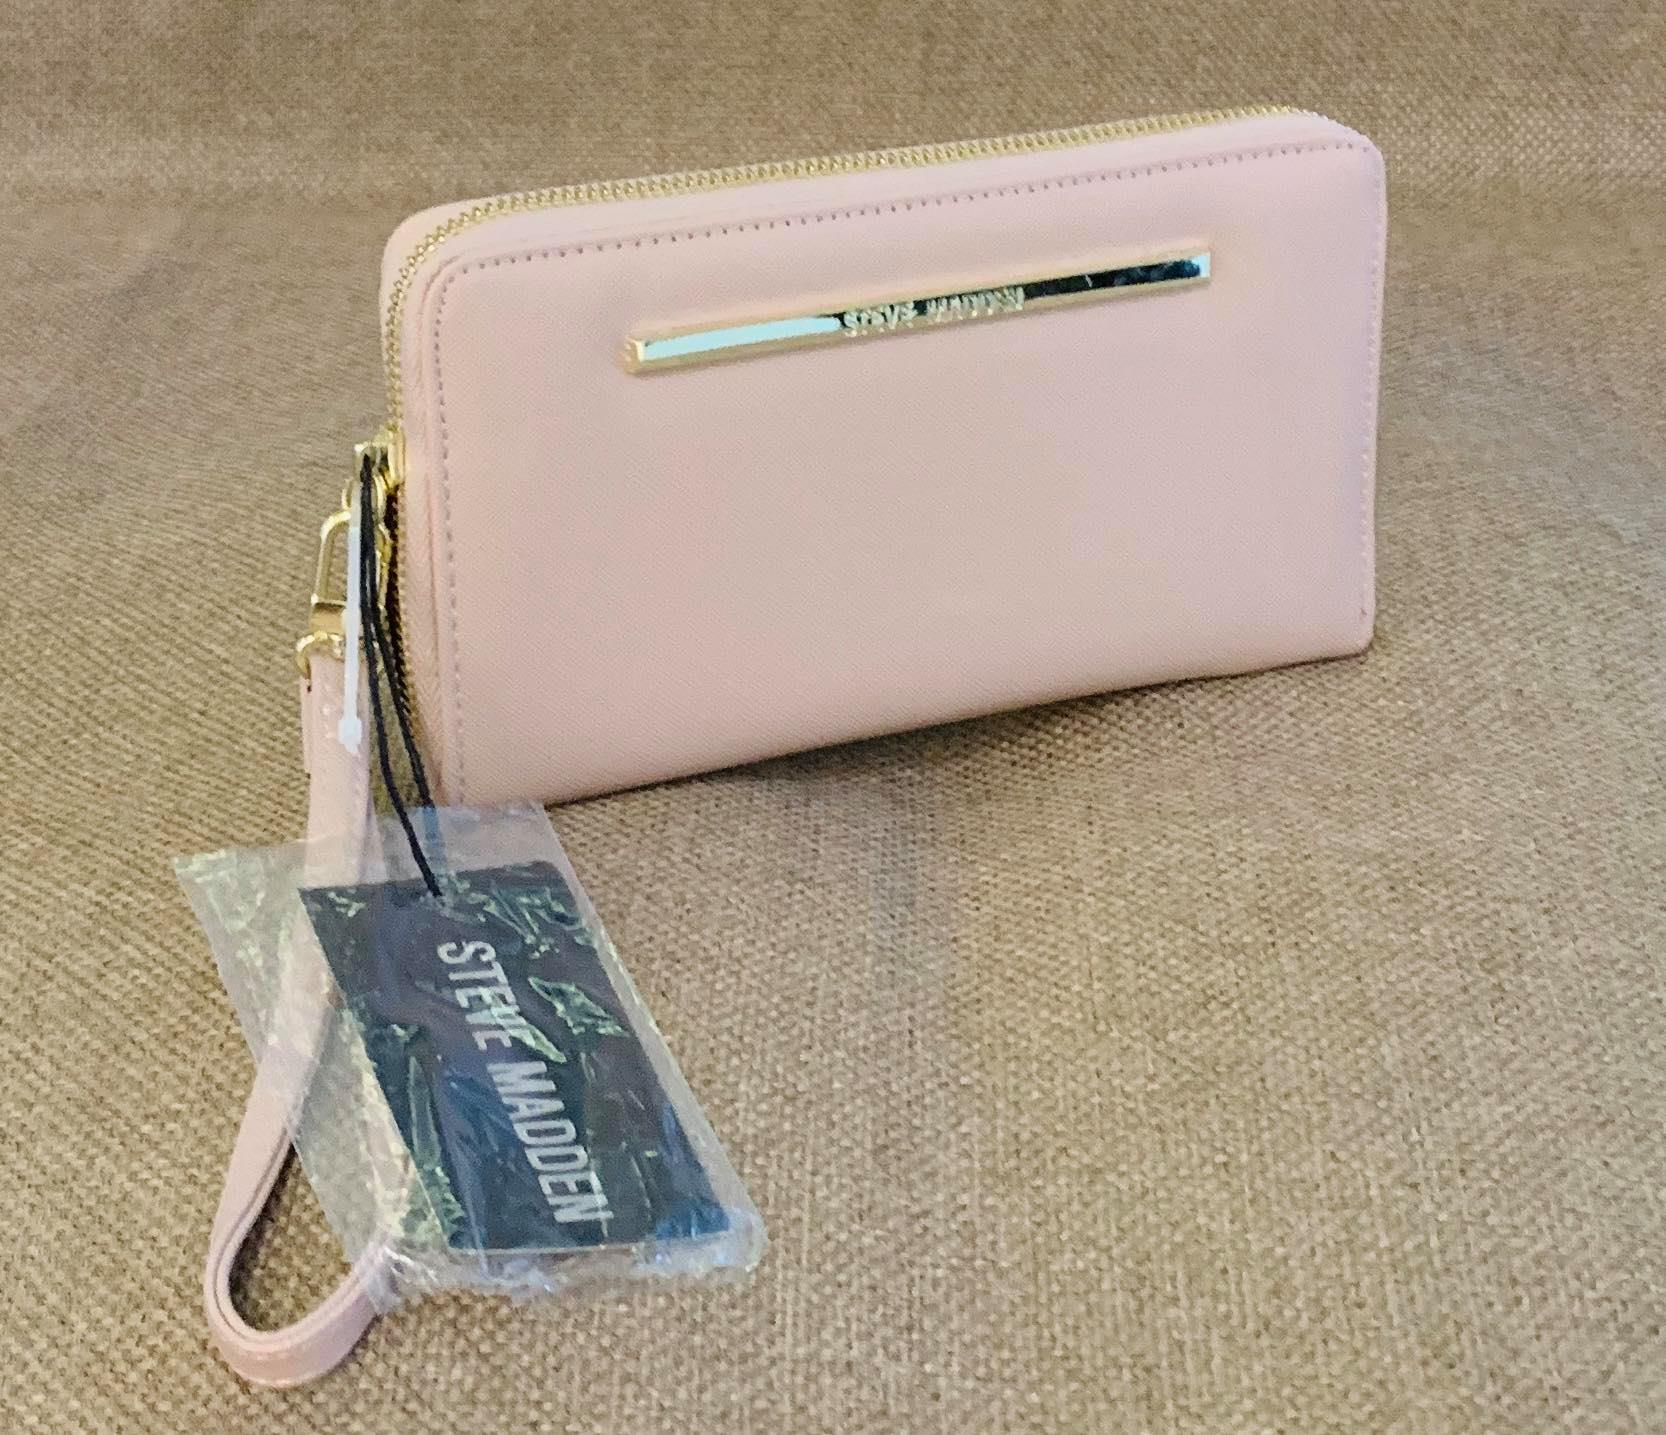 Ambiguo simplemente sentido  Steve Madden Long Wallet 🌸🌸In blush🌸🌸 Brand new and Imported from VA,  USA | Lazada PH